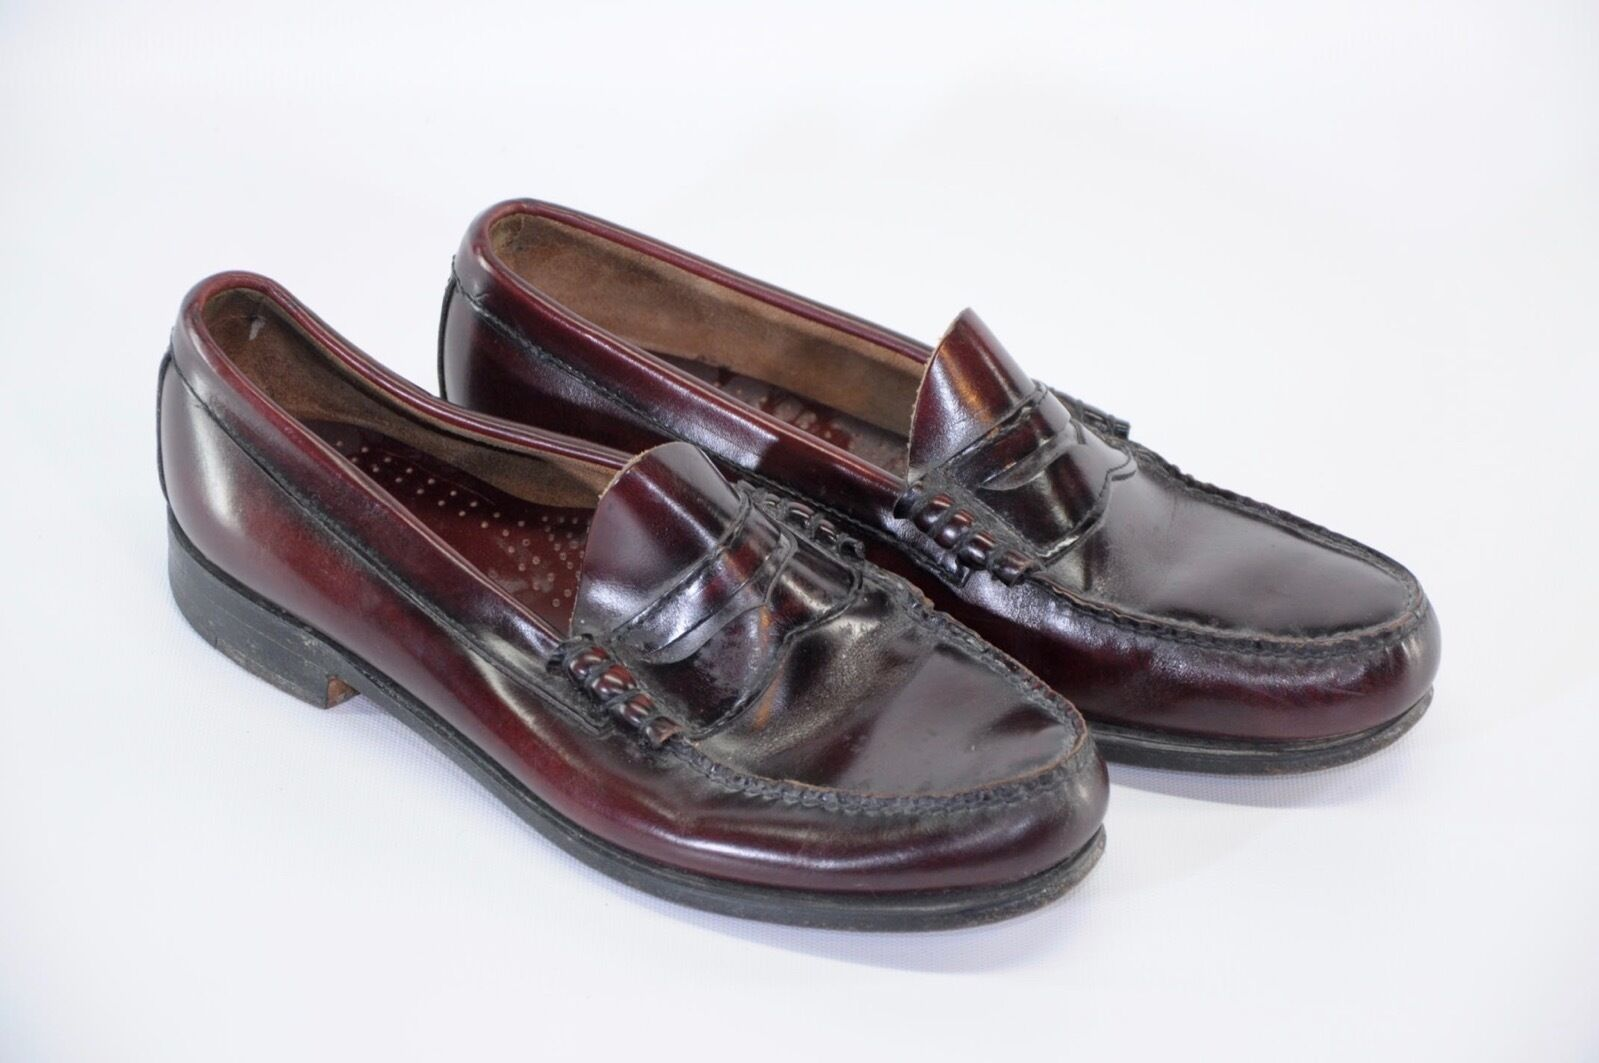 Scarpe casual da uomo Bass Weejuns Burgundy Cordovan Leather Beef Roll Penny Loafer 9.5